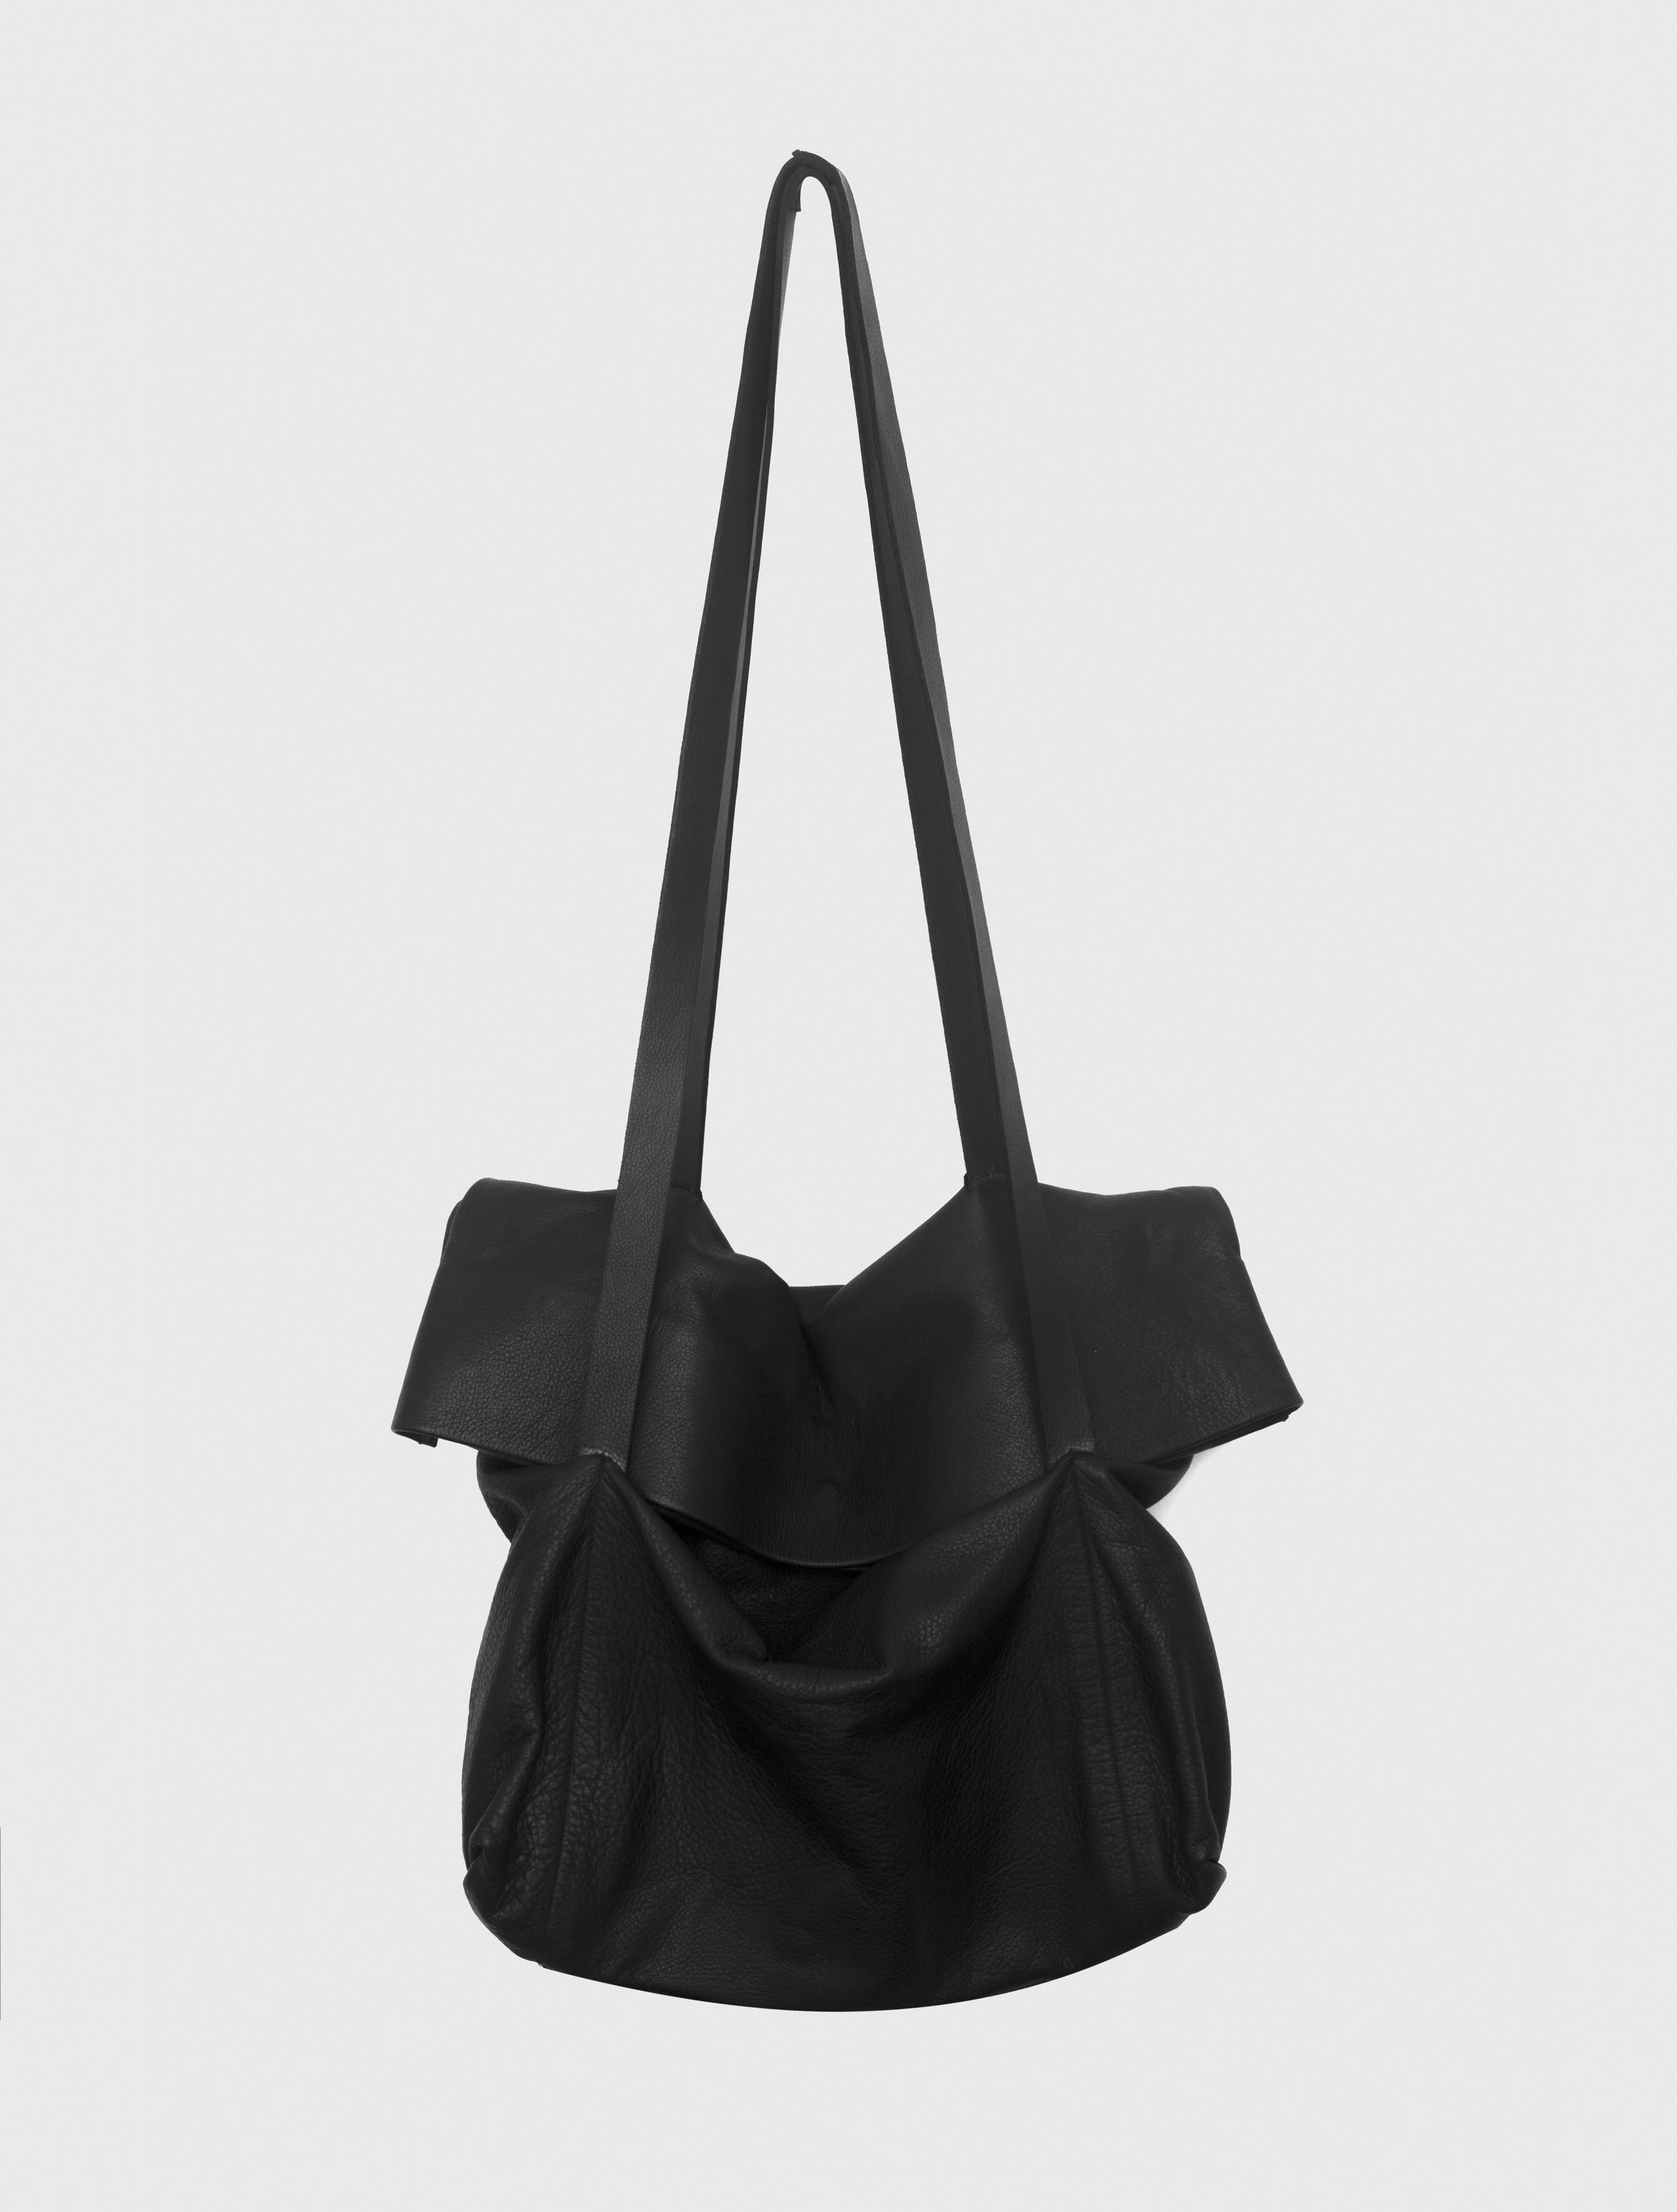 2014 DRAPED FOLDOVER BAG_0000_Layer 1.jpg